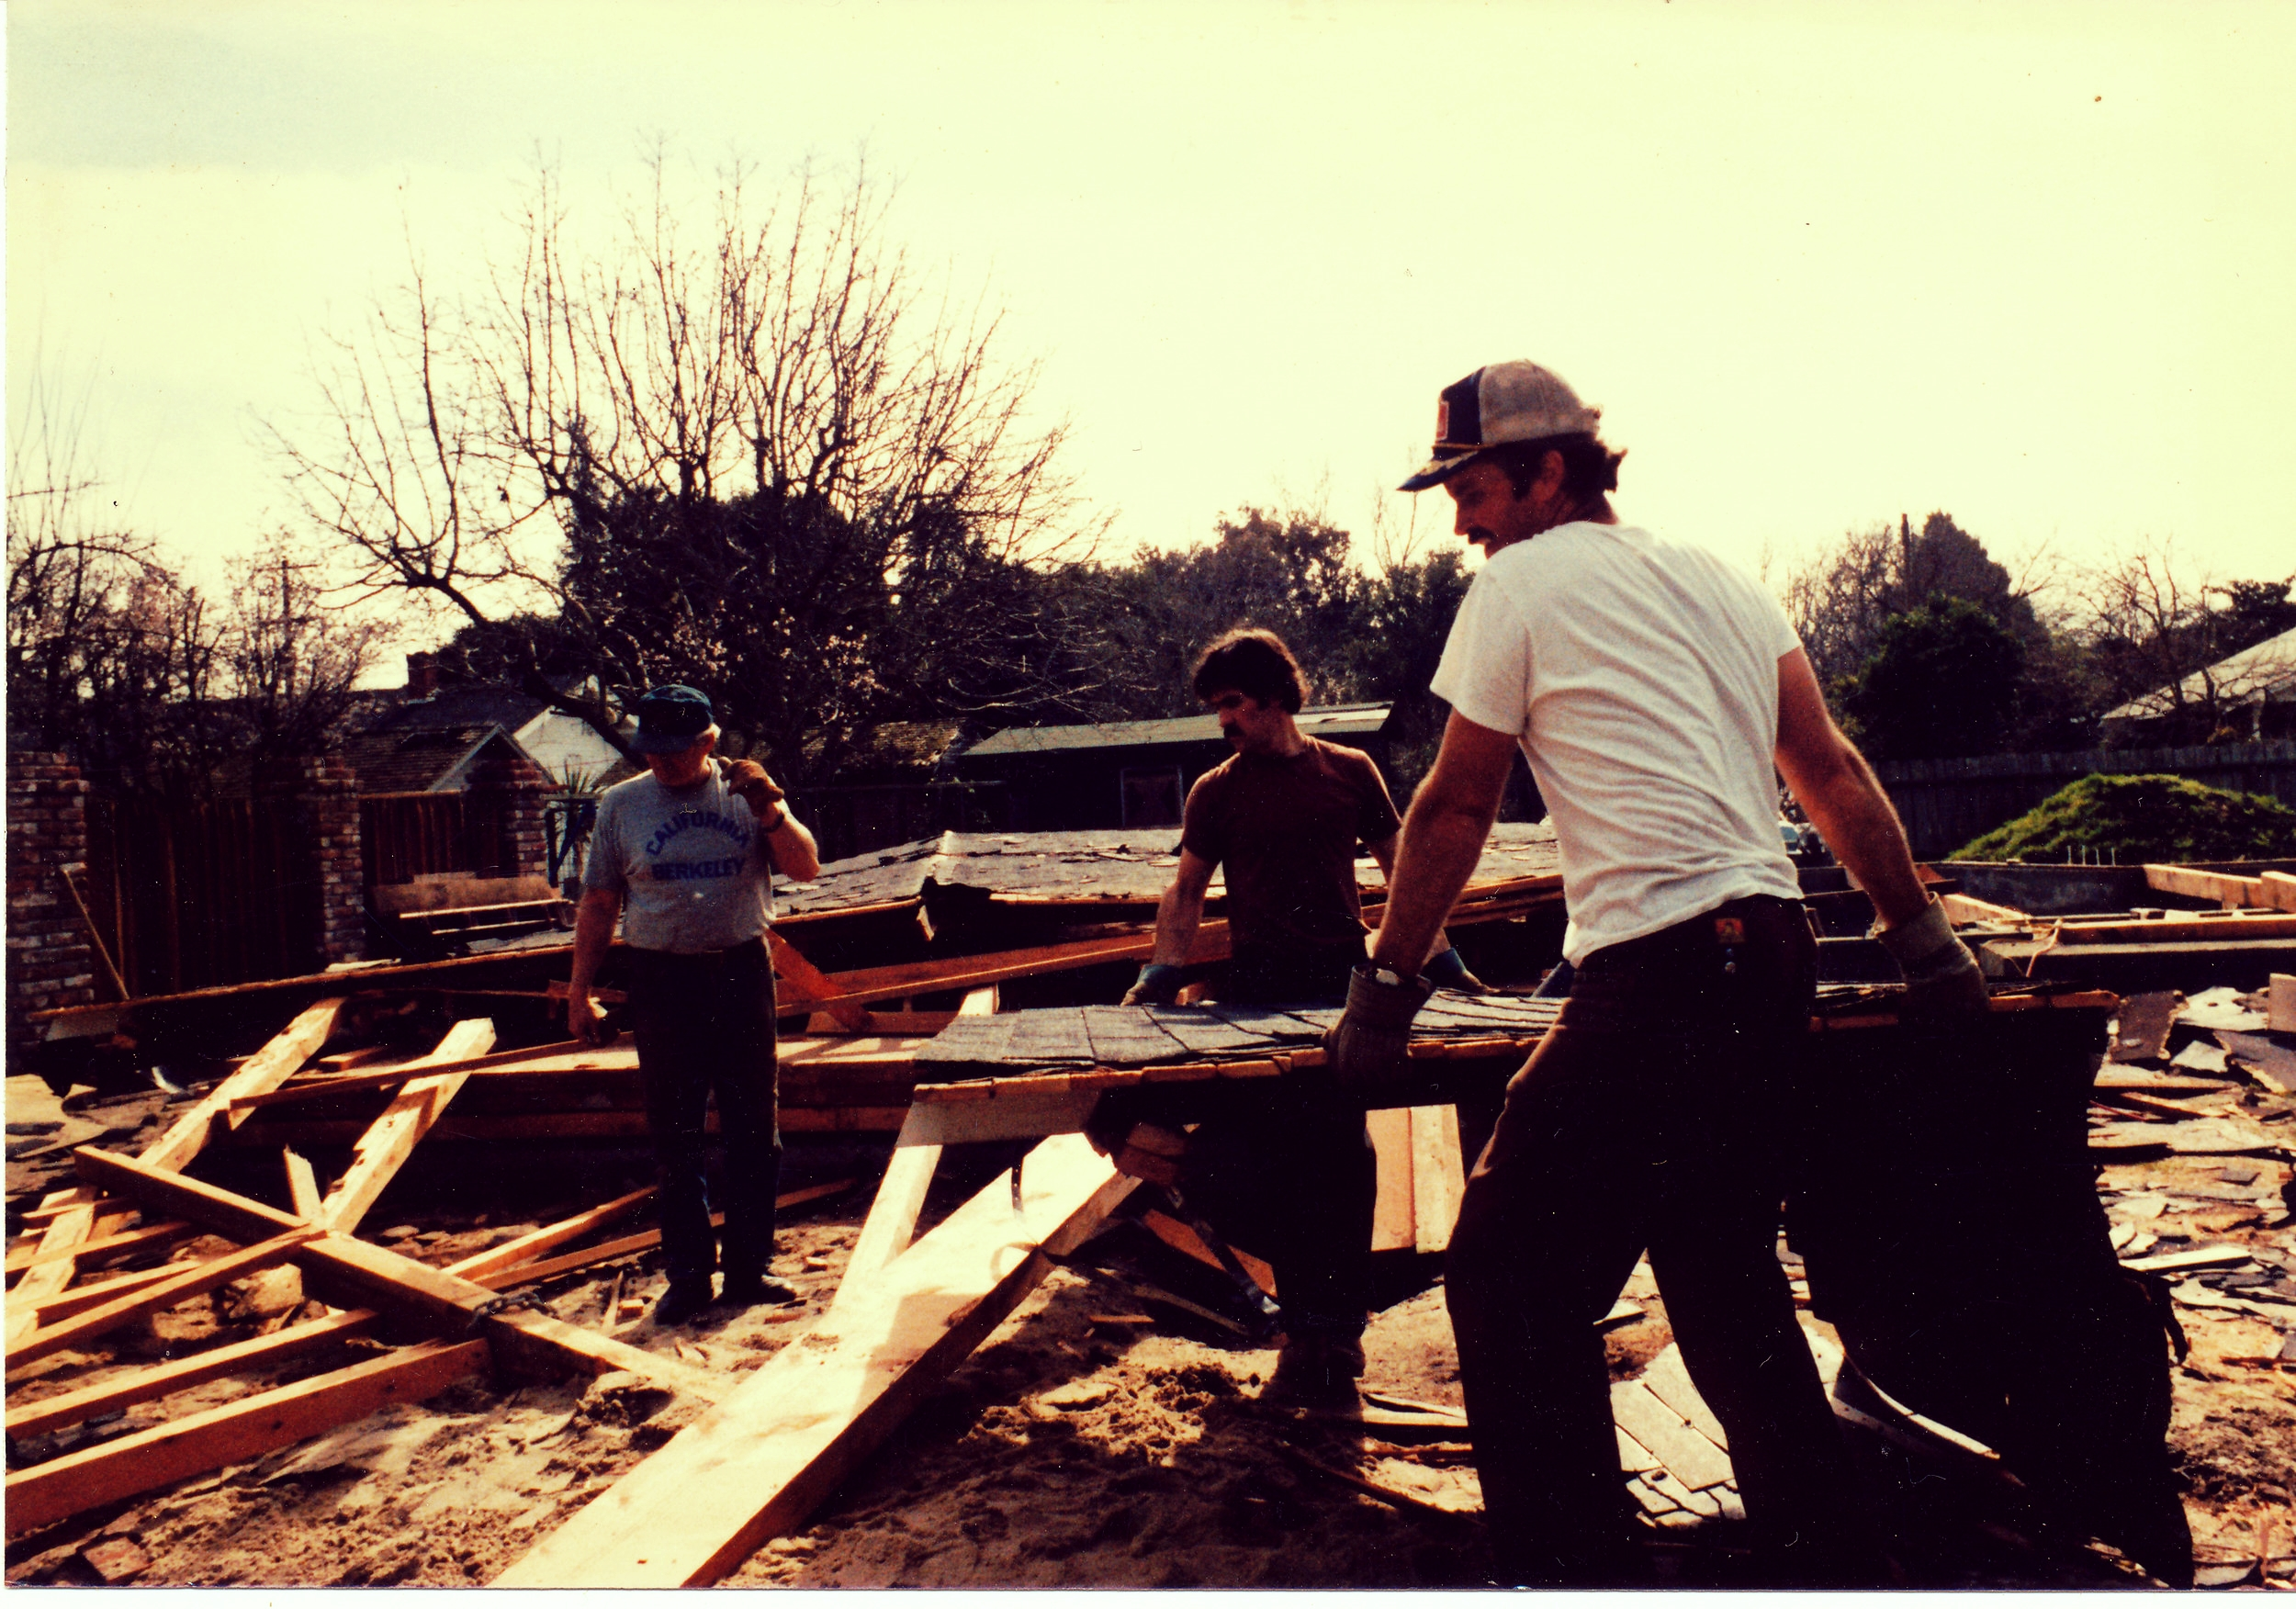 Pictured right to left: brothers John and Robert, and their father Paul working on a house in Palo Alto in the 1970s.